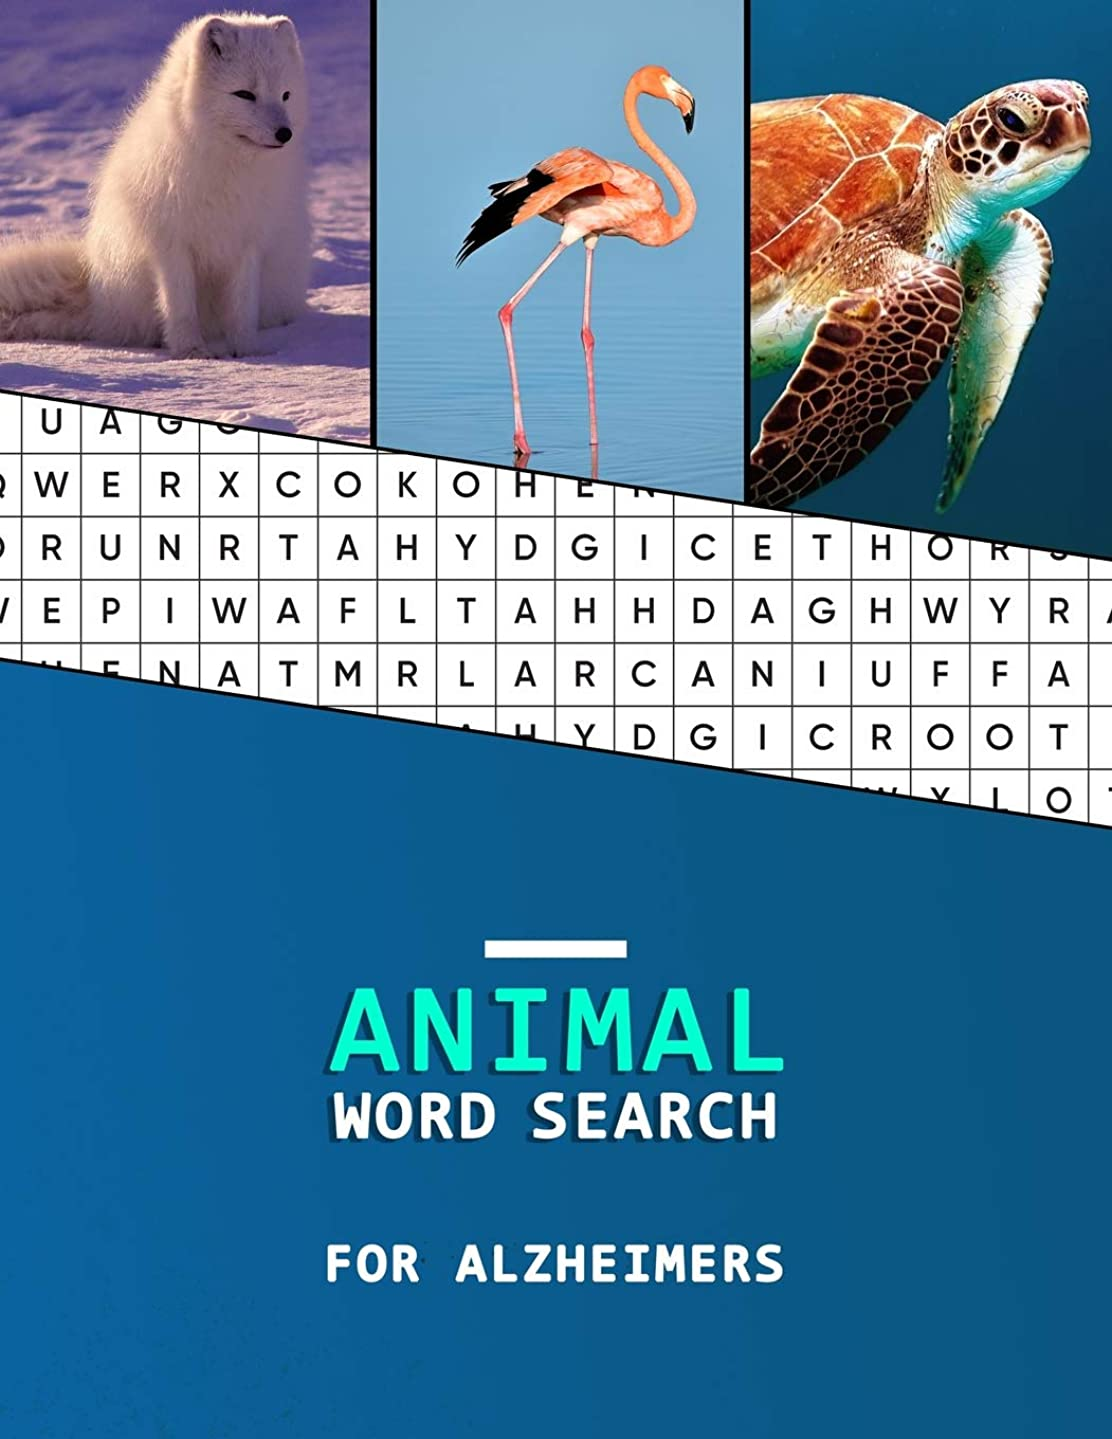 Animal Word Search for Alzheimers: A wordsearch with large prints for those suffering from dementia - Easy progressive style